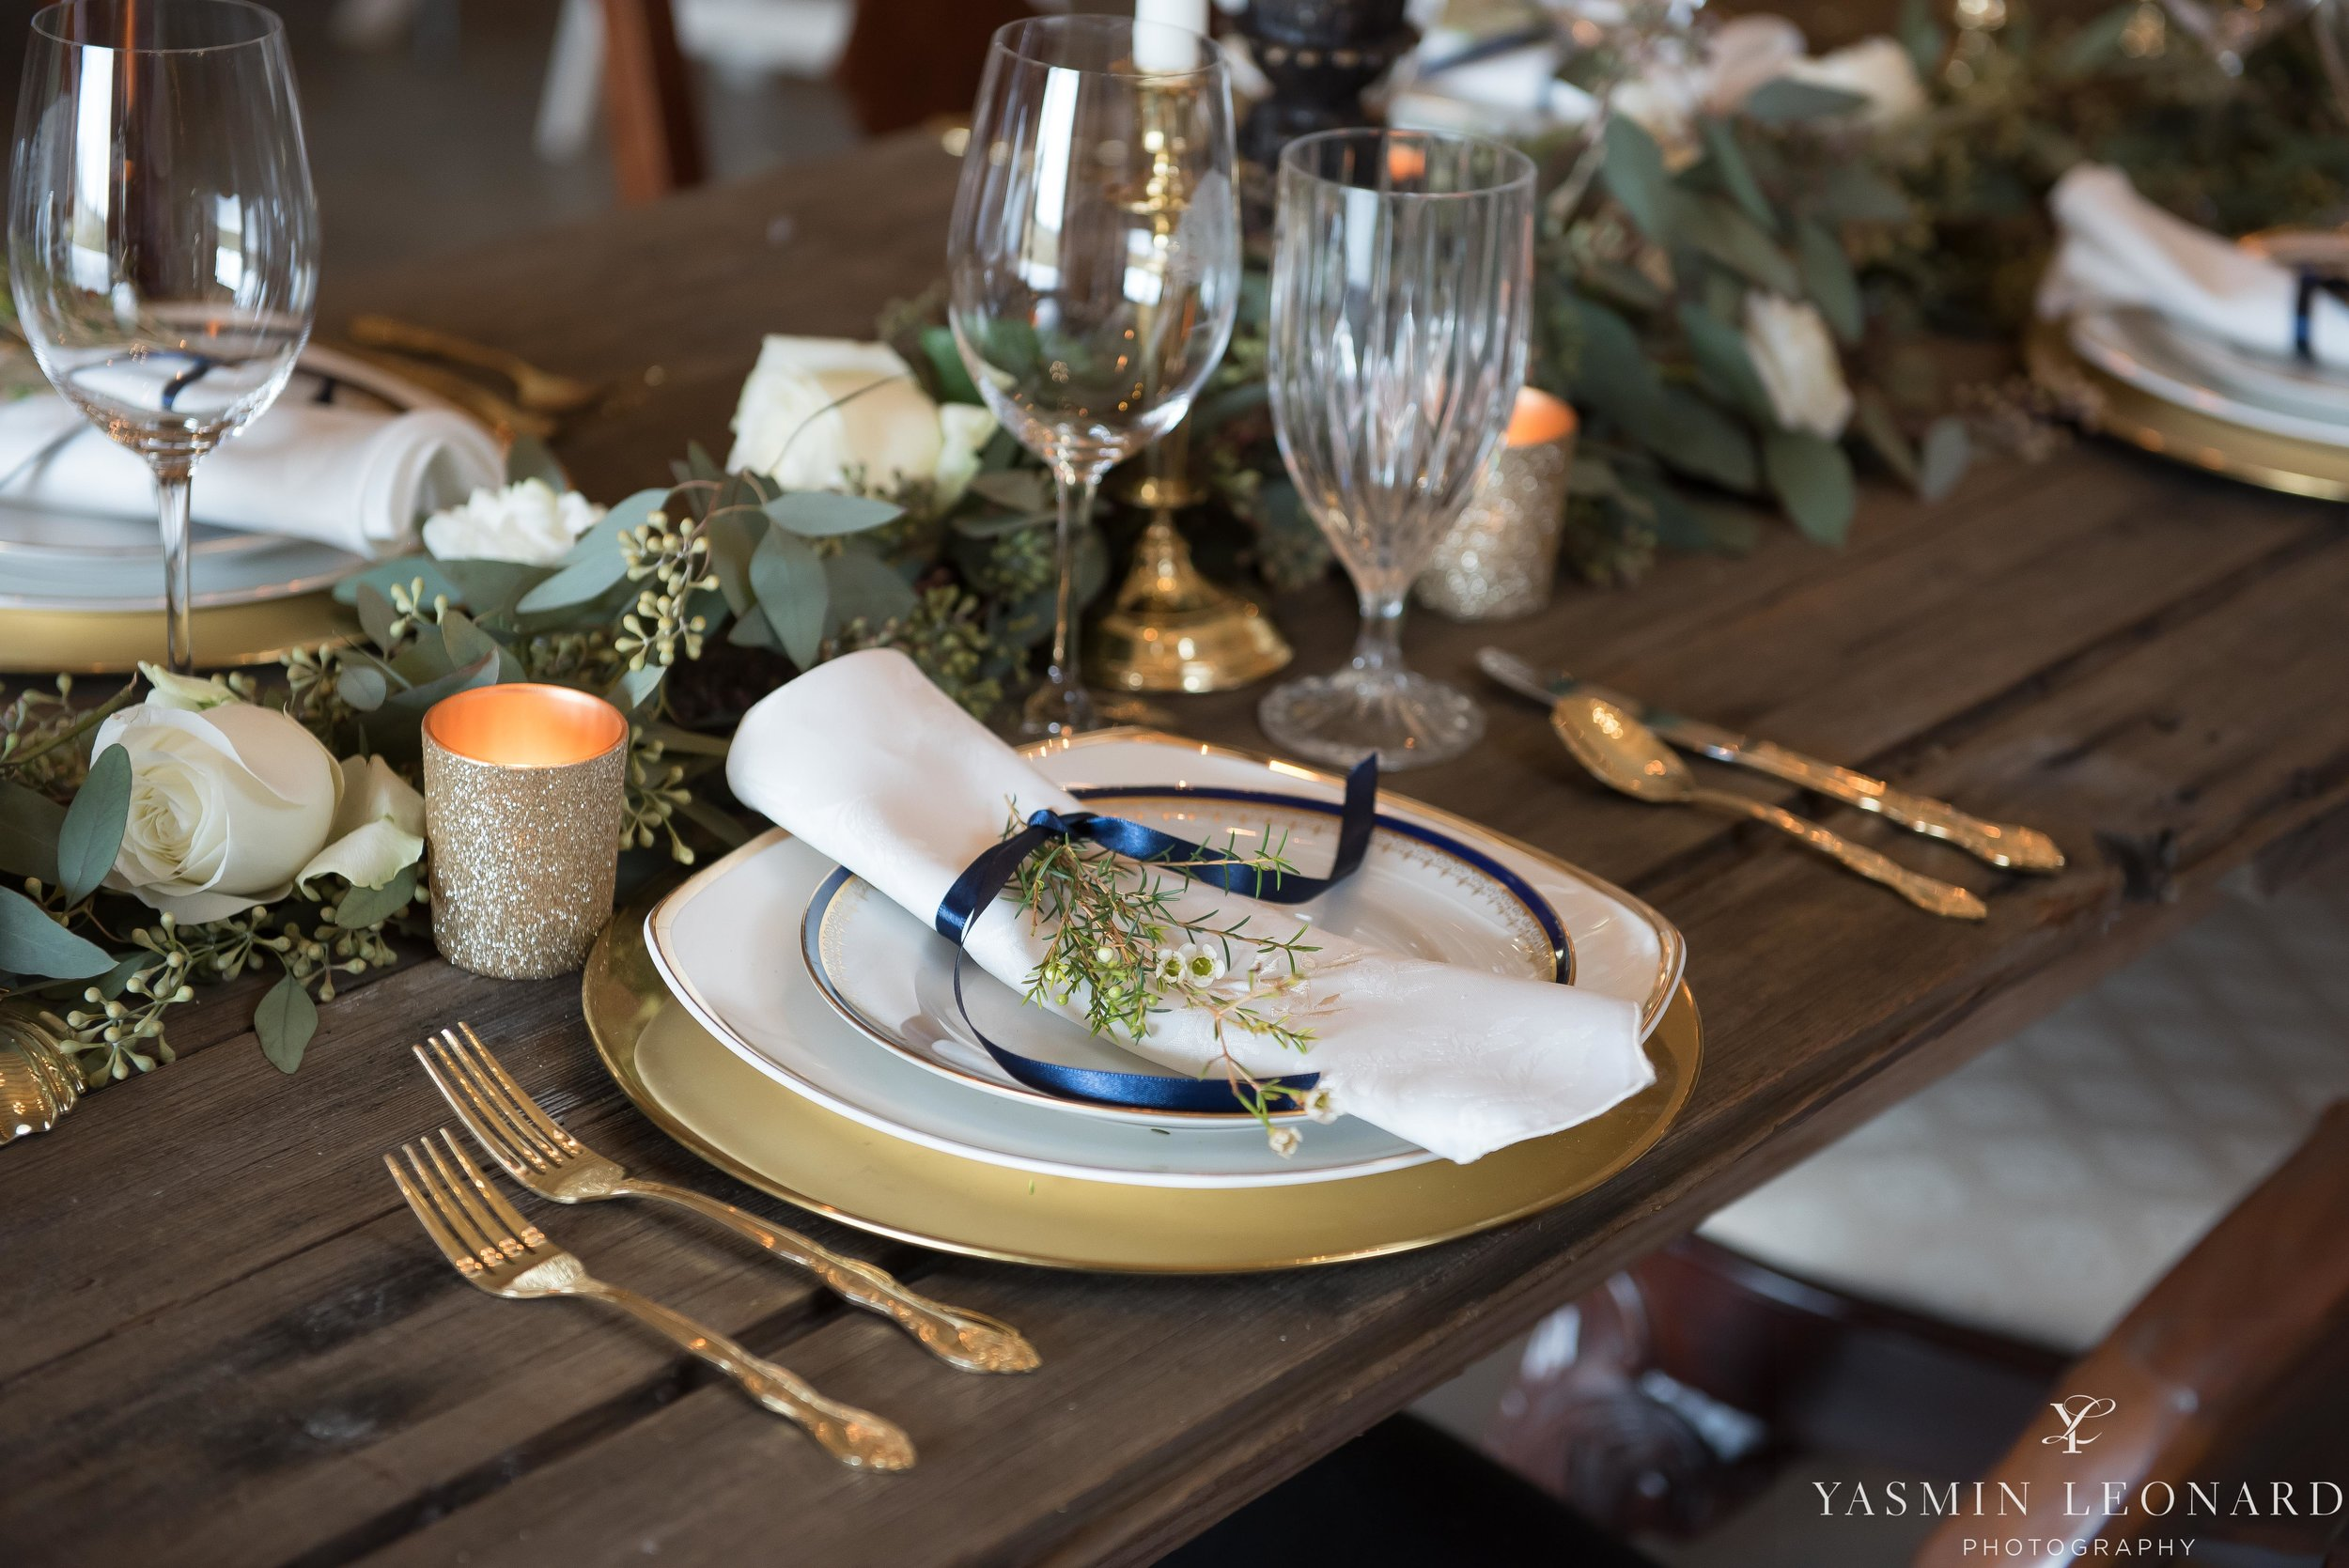 Old Homeplace Vineyard - Grits and Glitter - Dashing Dames Bridal Boutique - Just Priceless - Yasmin Leonard Photography - High Point Weddings - NC Weddings - NC Wedding Venues - High Point Jewelers - NC Wines - NC Vineyards - Cupcake Cuties-23.jpg